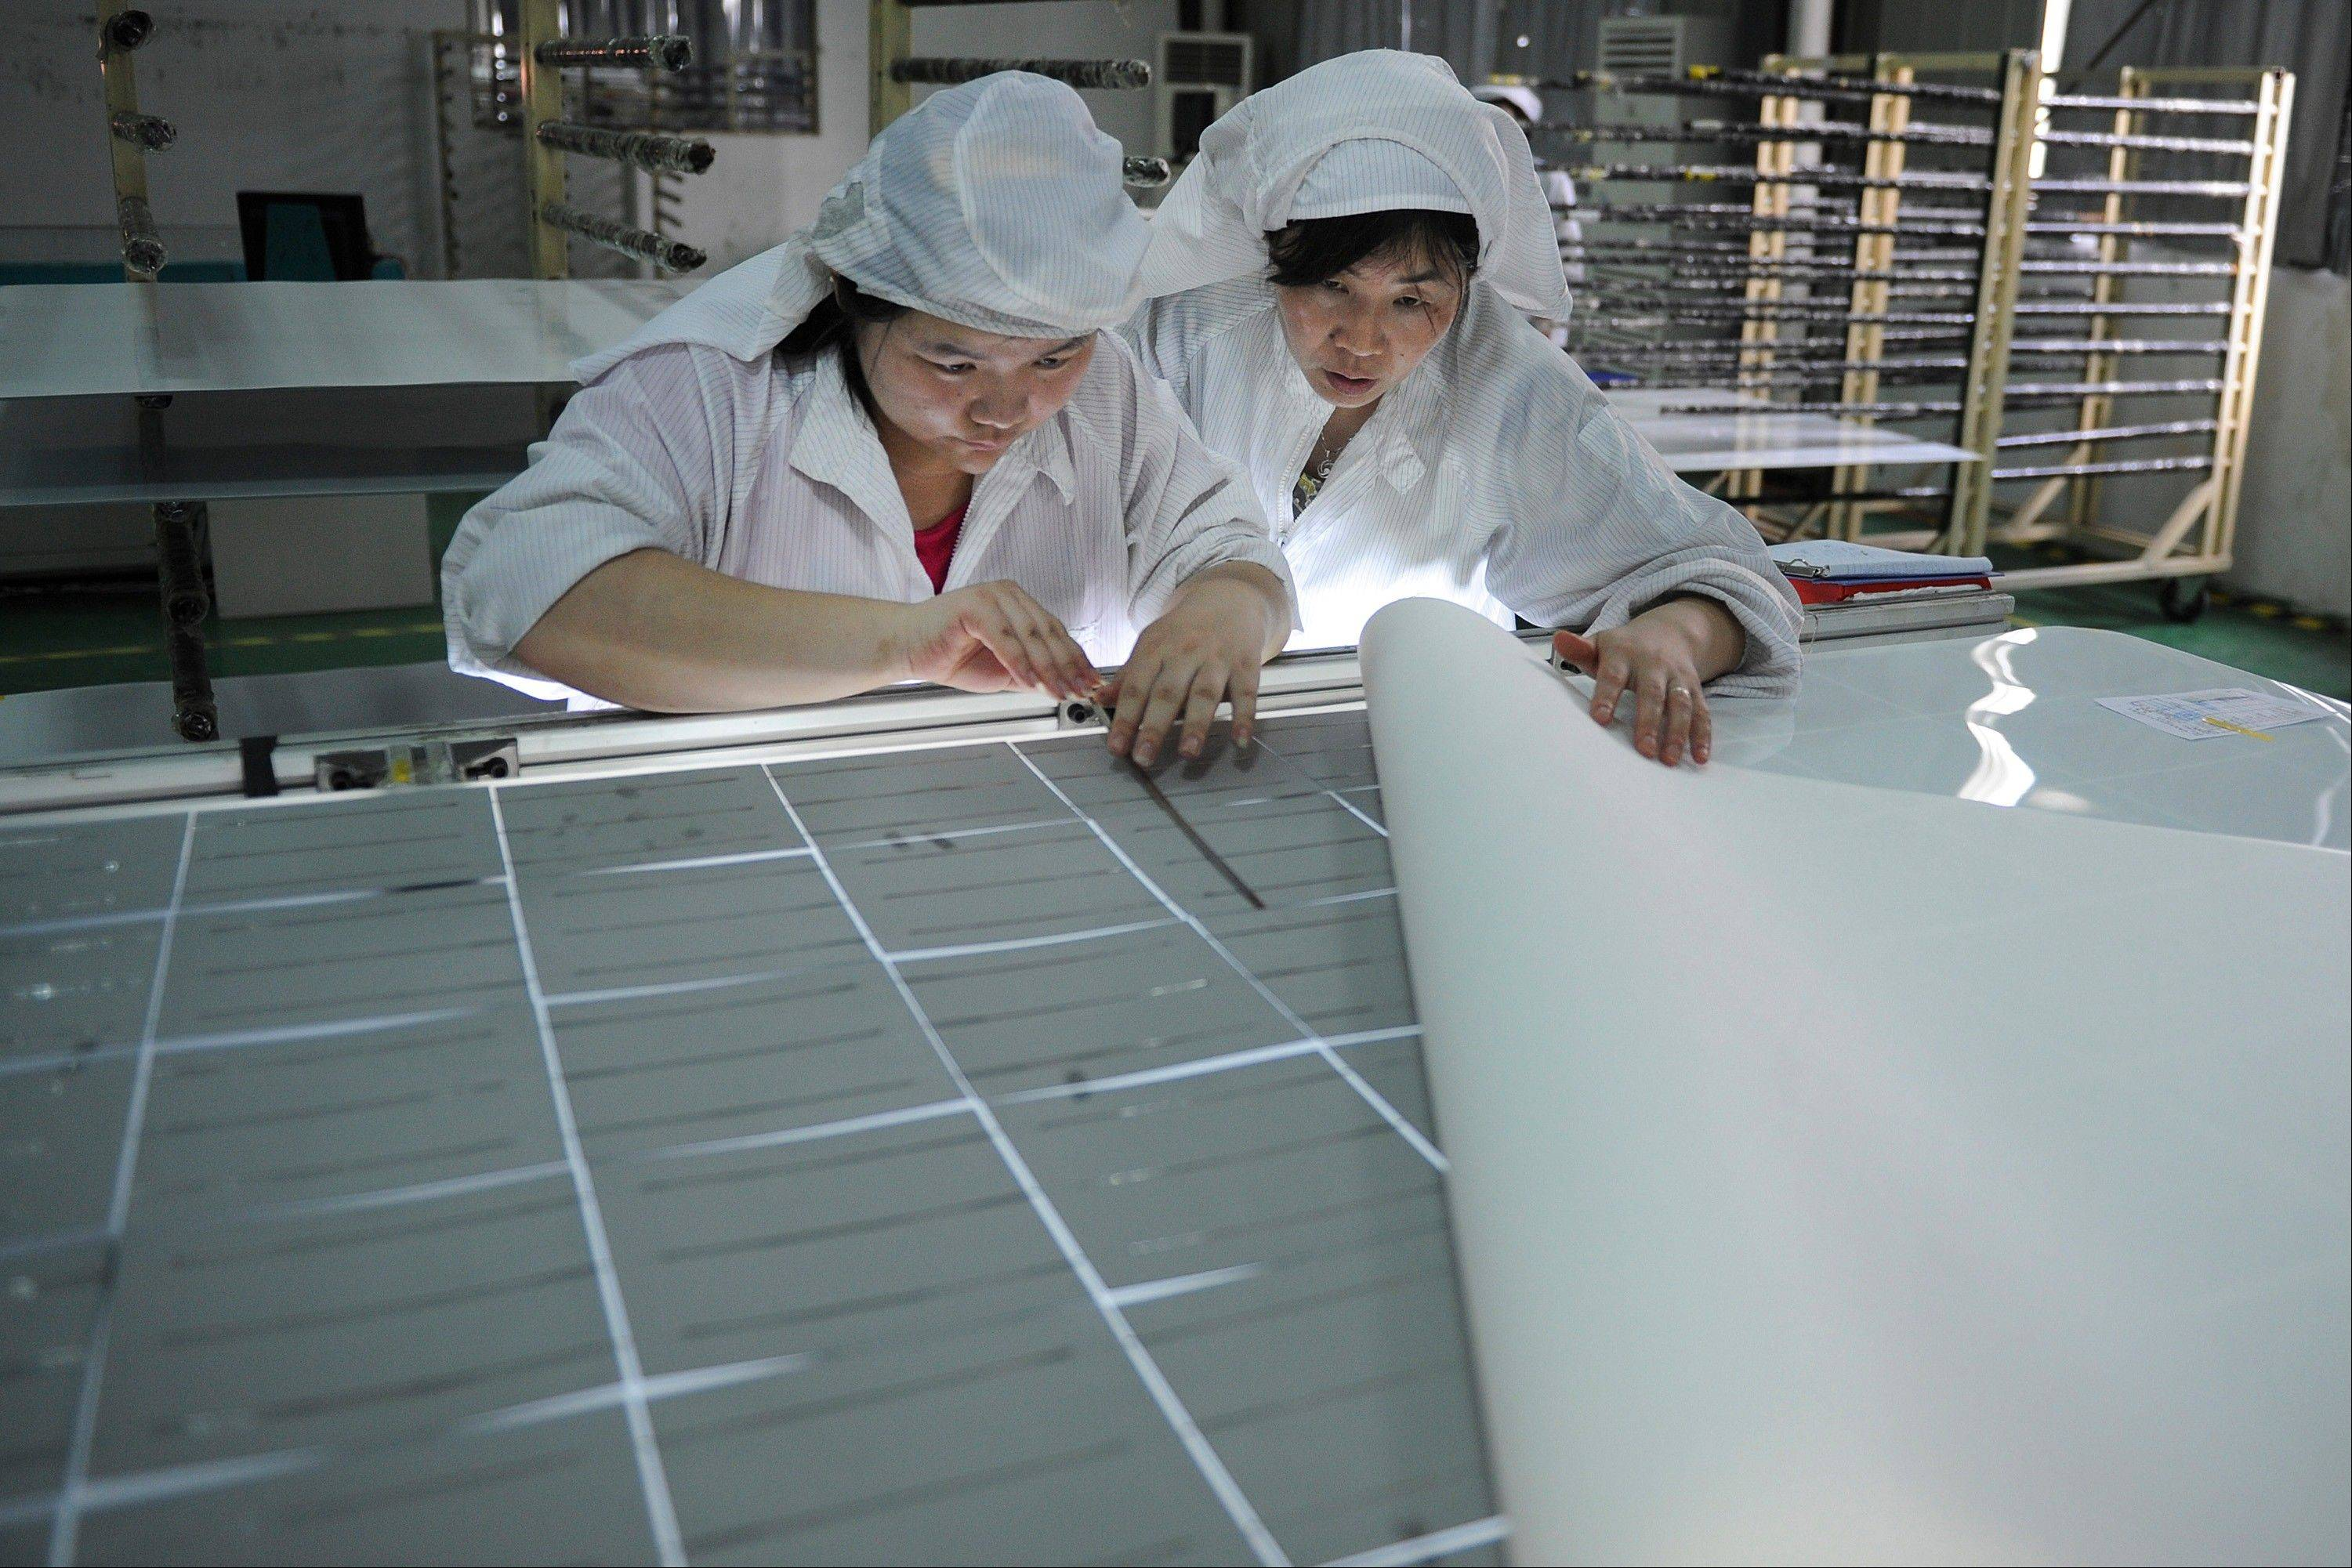 Workers assemble solar panels at a factory in Hefei, in central China's Anhui province.